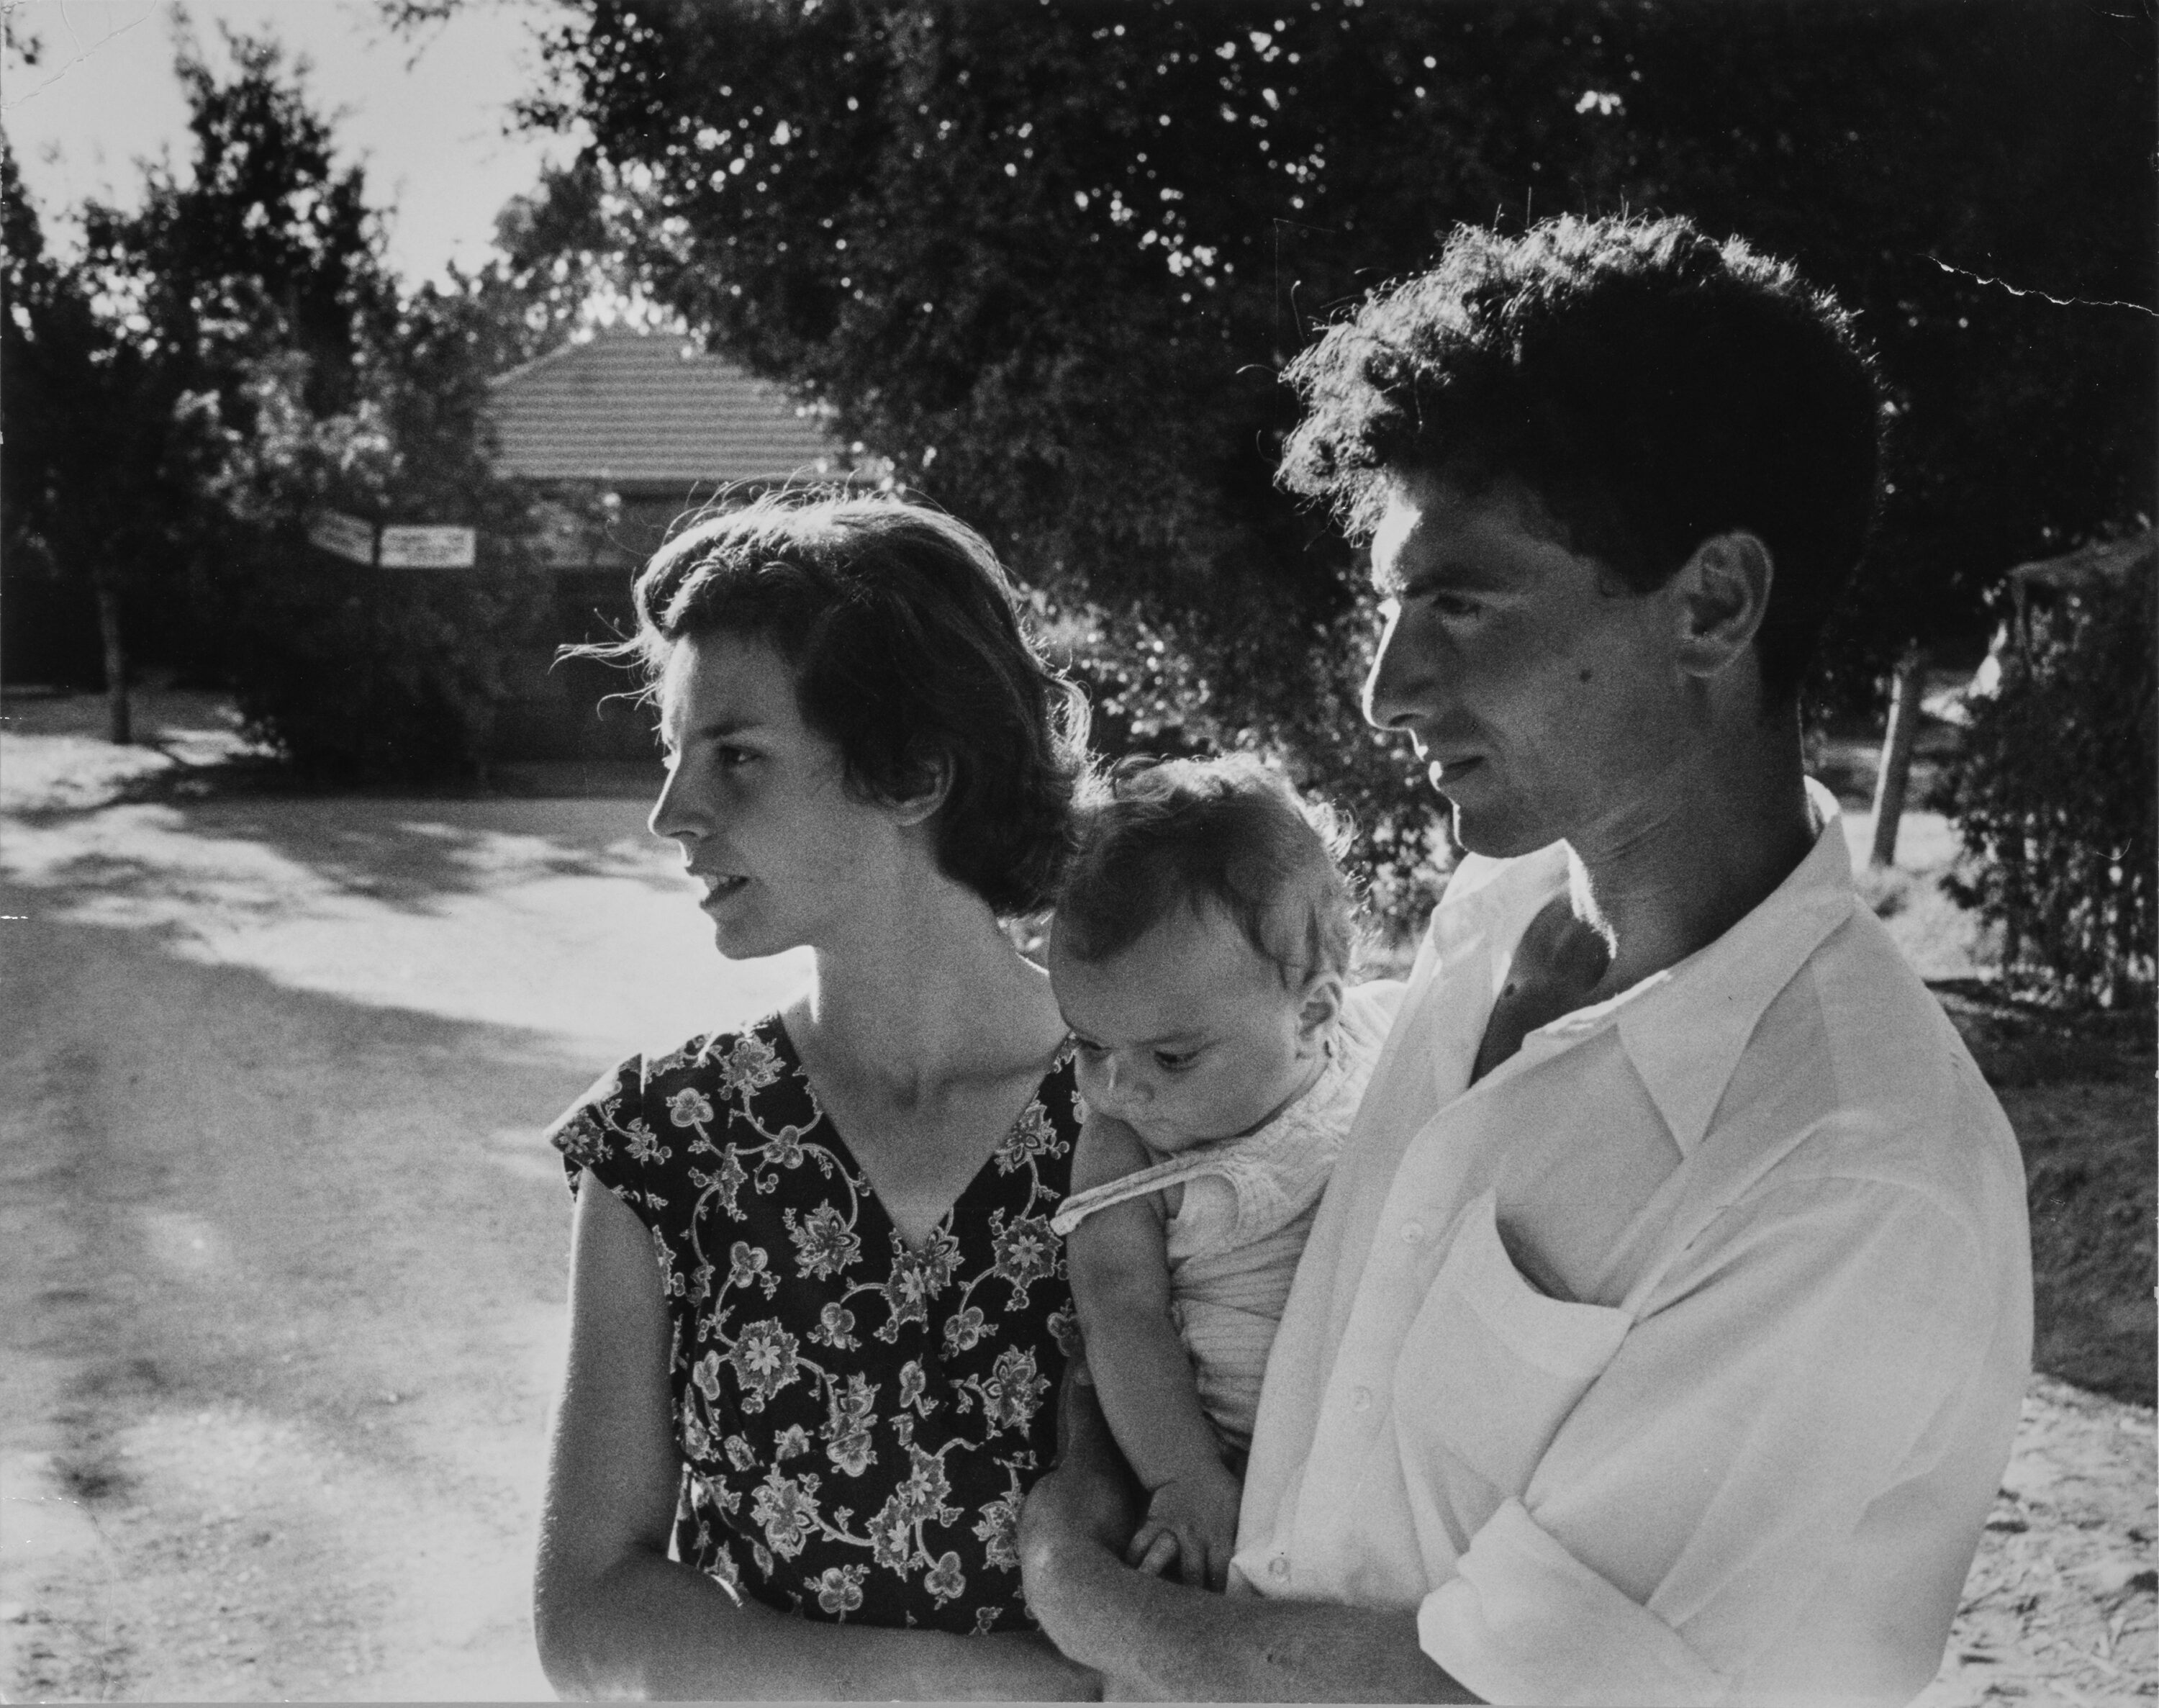 A man stands next to a woman holding a baby on his hip between the two of them; all the figures have light skin tone and brown hair. The adults are seen in profile looking to the left at something out of the frame. They are in a sunny outdoor setting in front of trees and a structure in the distance.